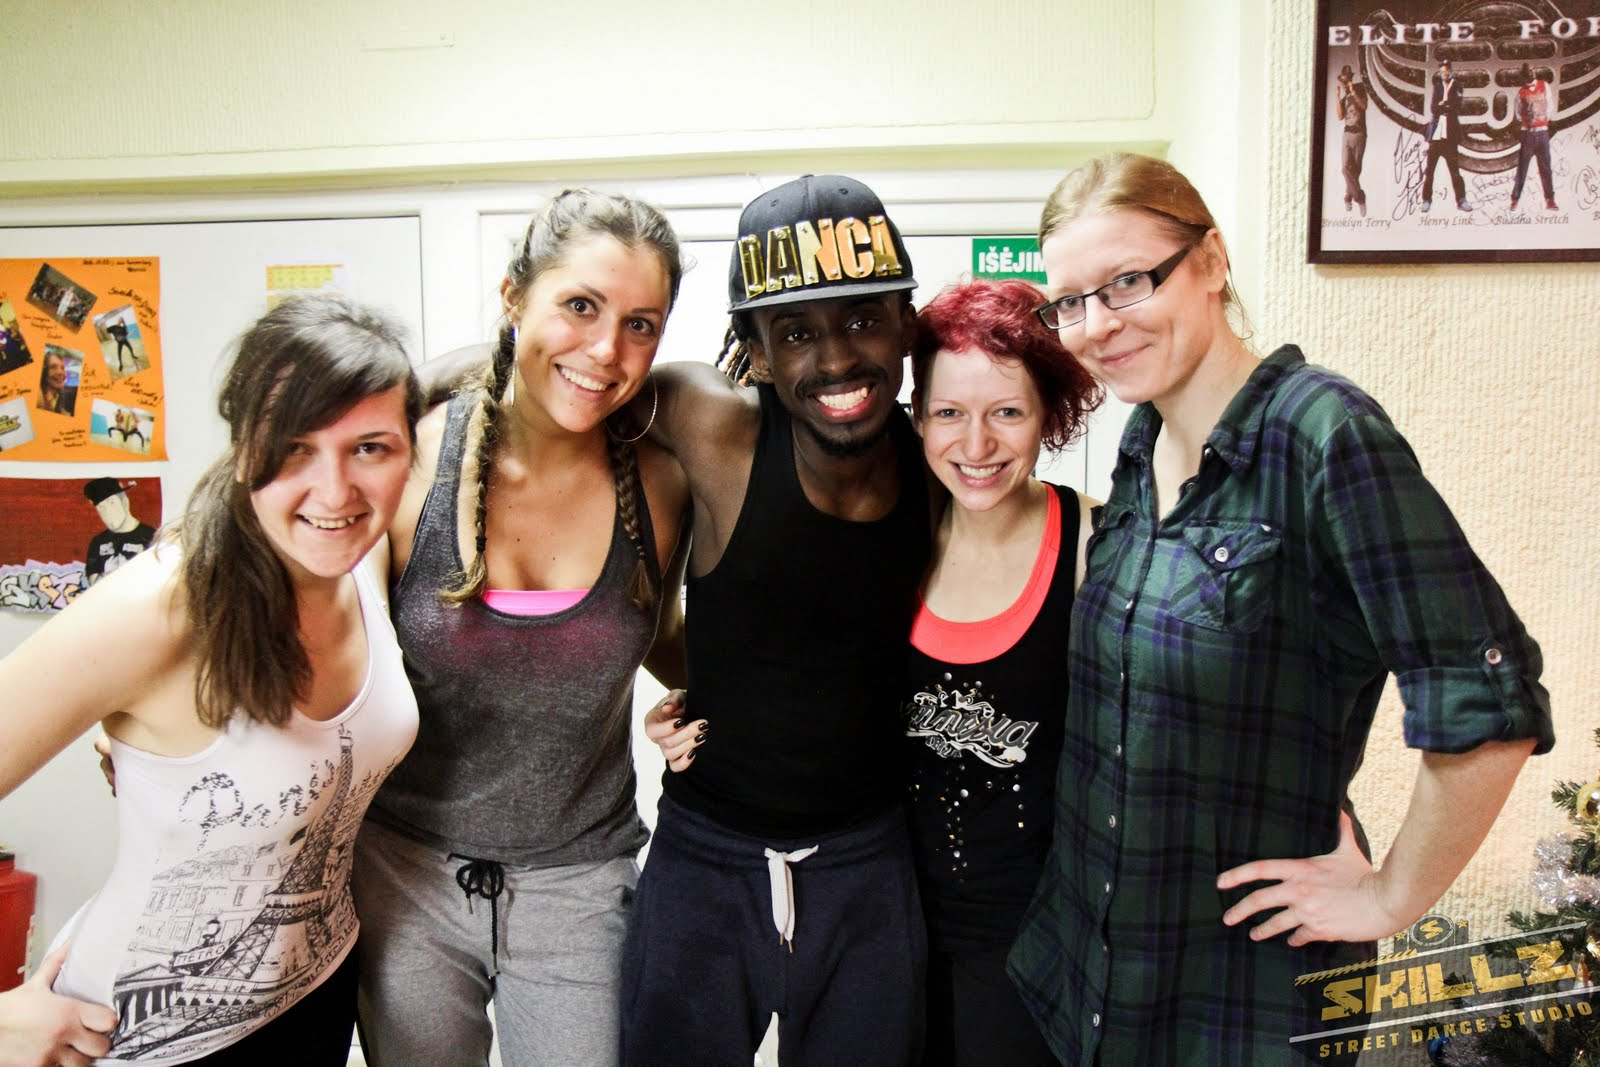 Dancehall workshop with Black Di Danca (USA, New Y - IMG_6771.jpg